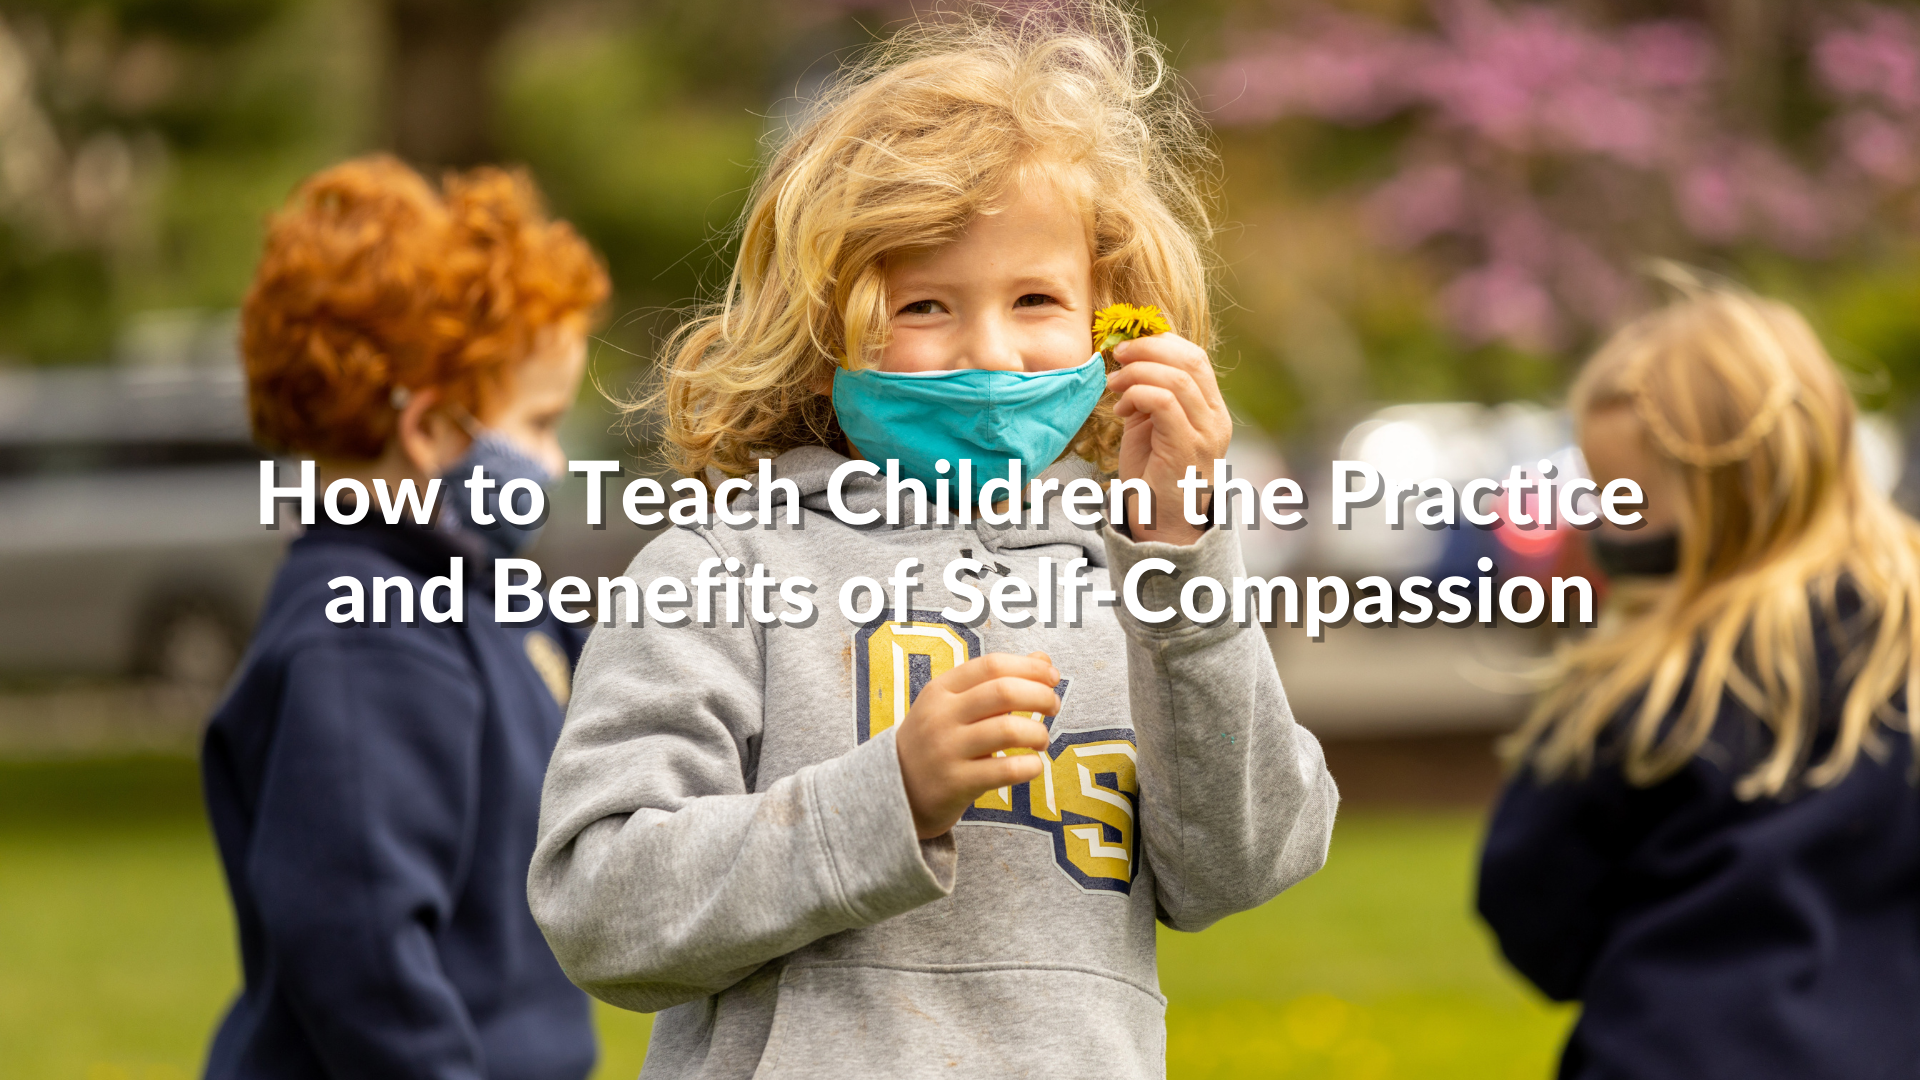 How to Teach Children the Practice and Benefits of Self-Compassion